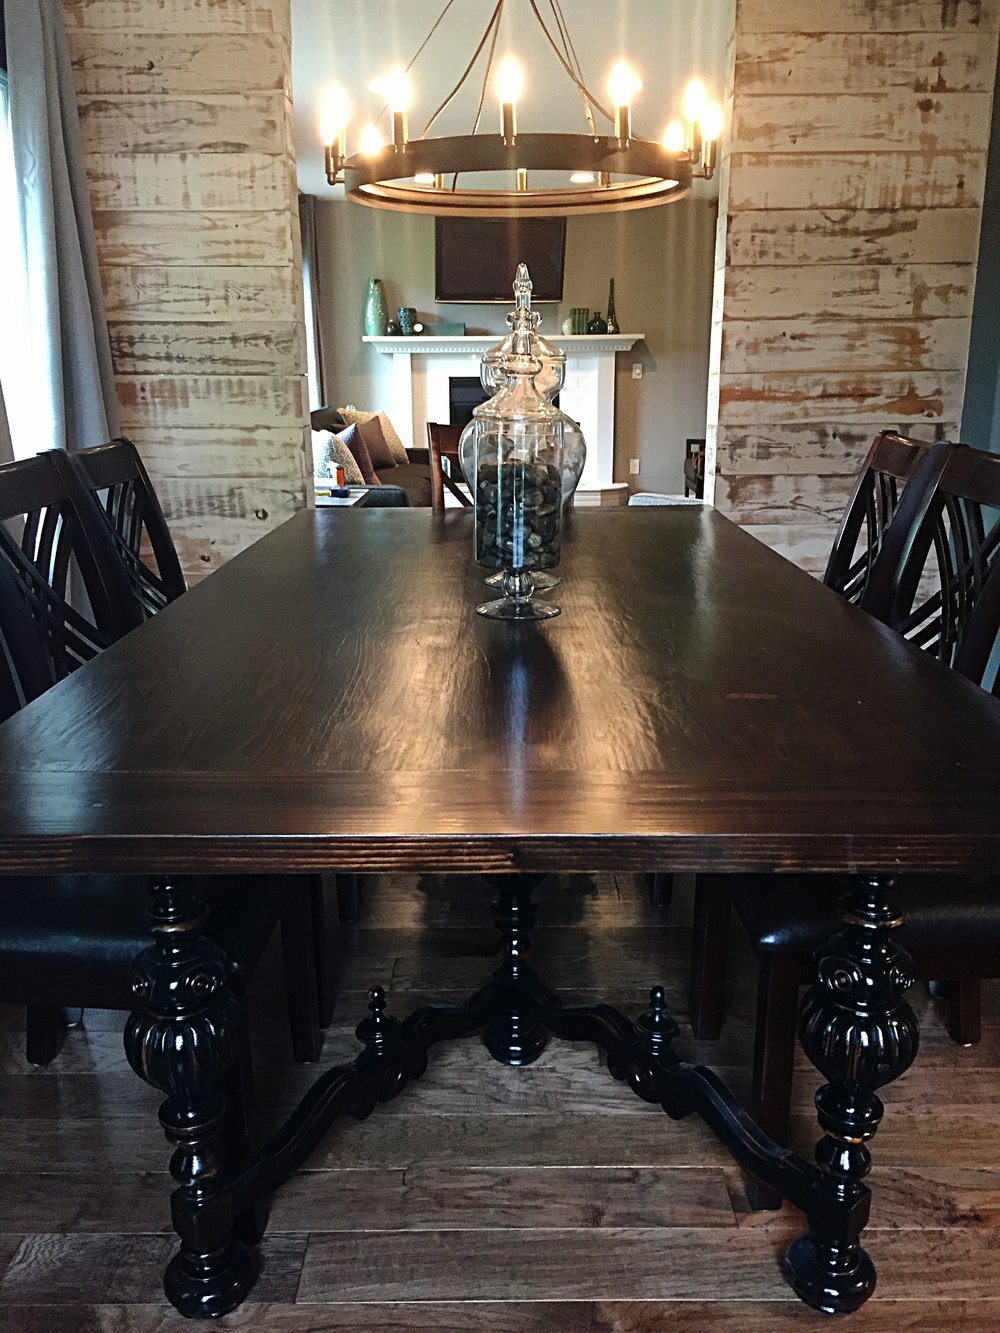 After - Here Cody created a custom dining table, handmade chandelier. The contrast of a vintage farm wood top against the antique table base creates the perfect amount of contrast against the industrial chandelier and shiplap wall.